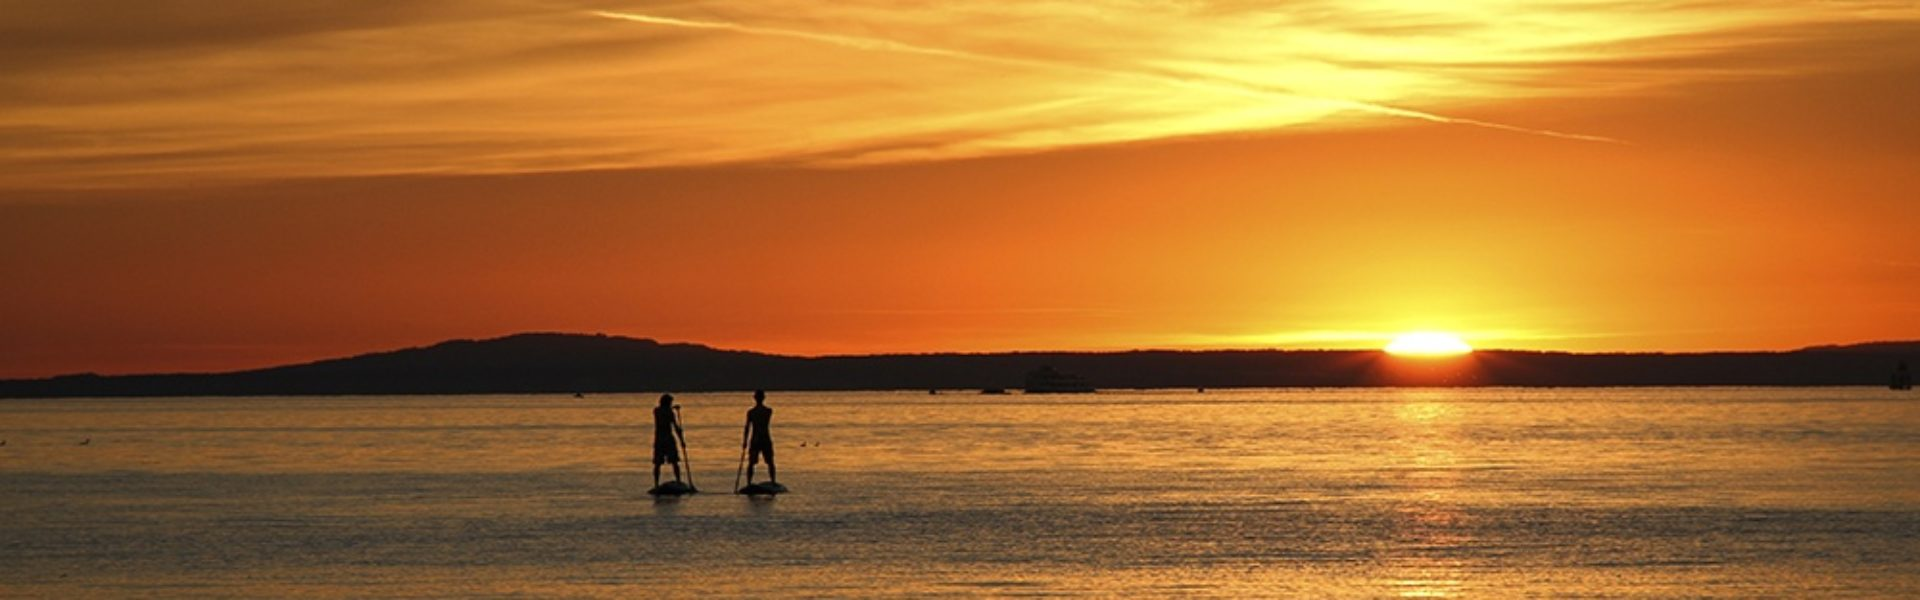 Sonnenuntergangstour SUP, Stand-up paddling (c) Ländle SUP